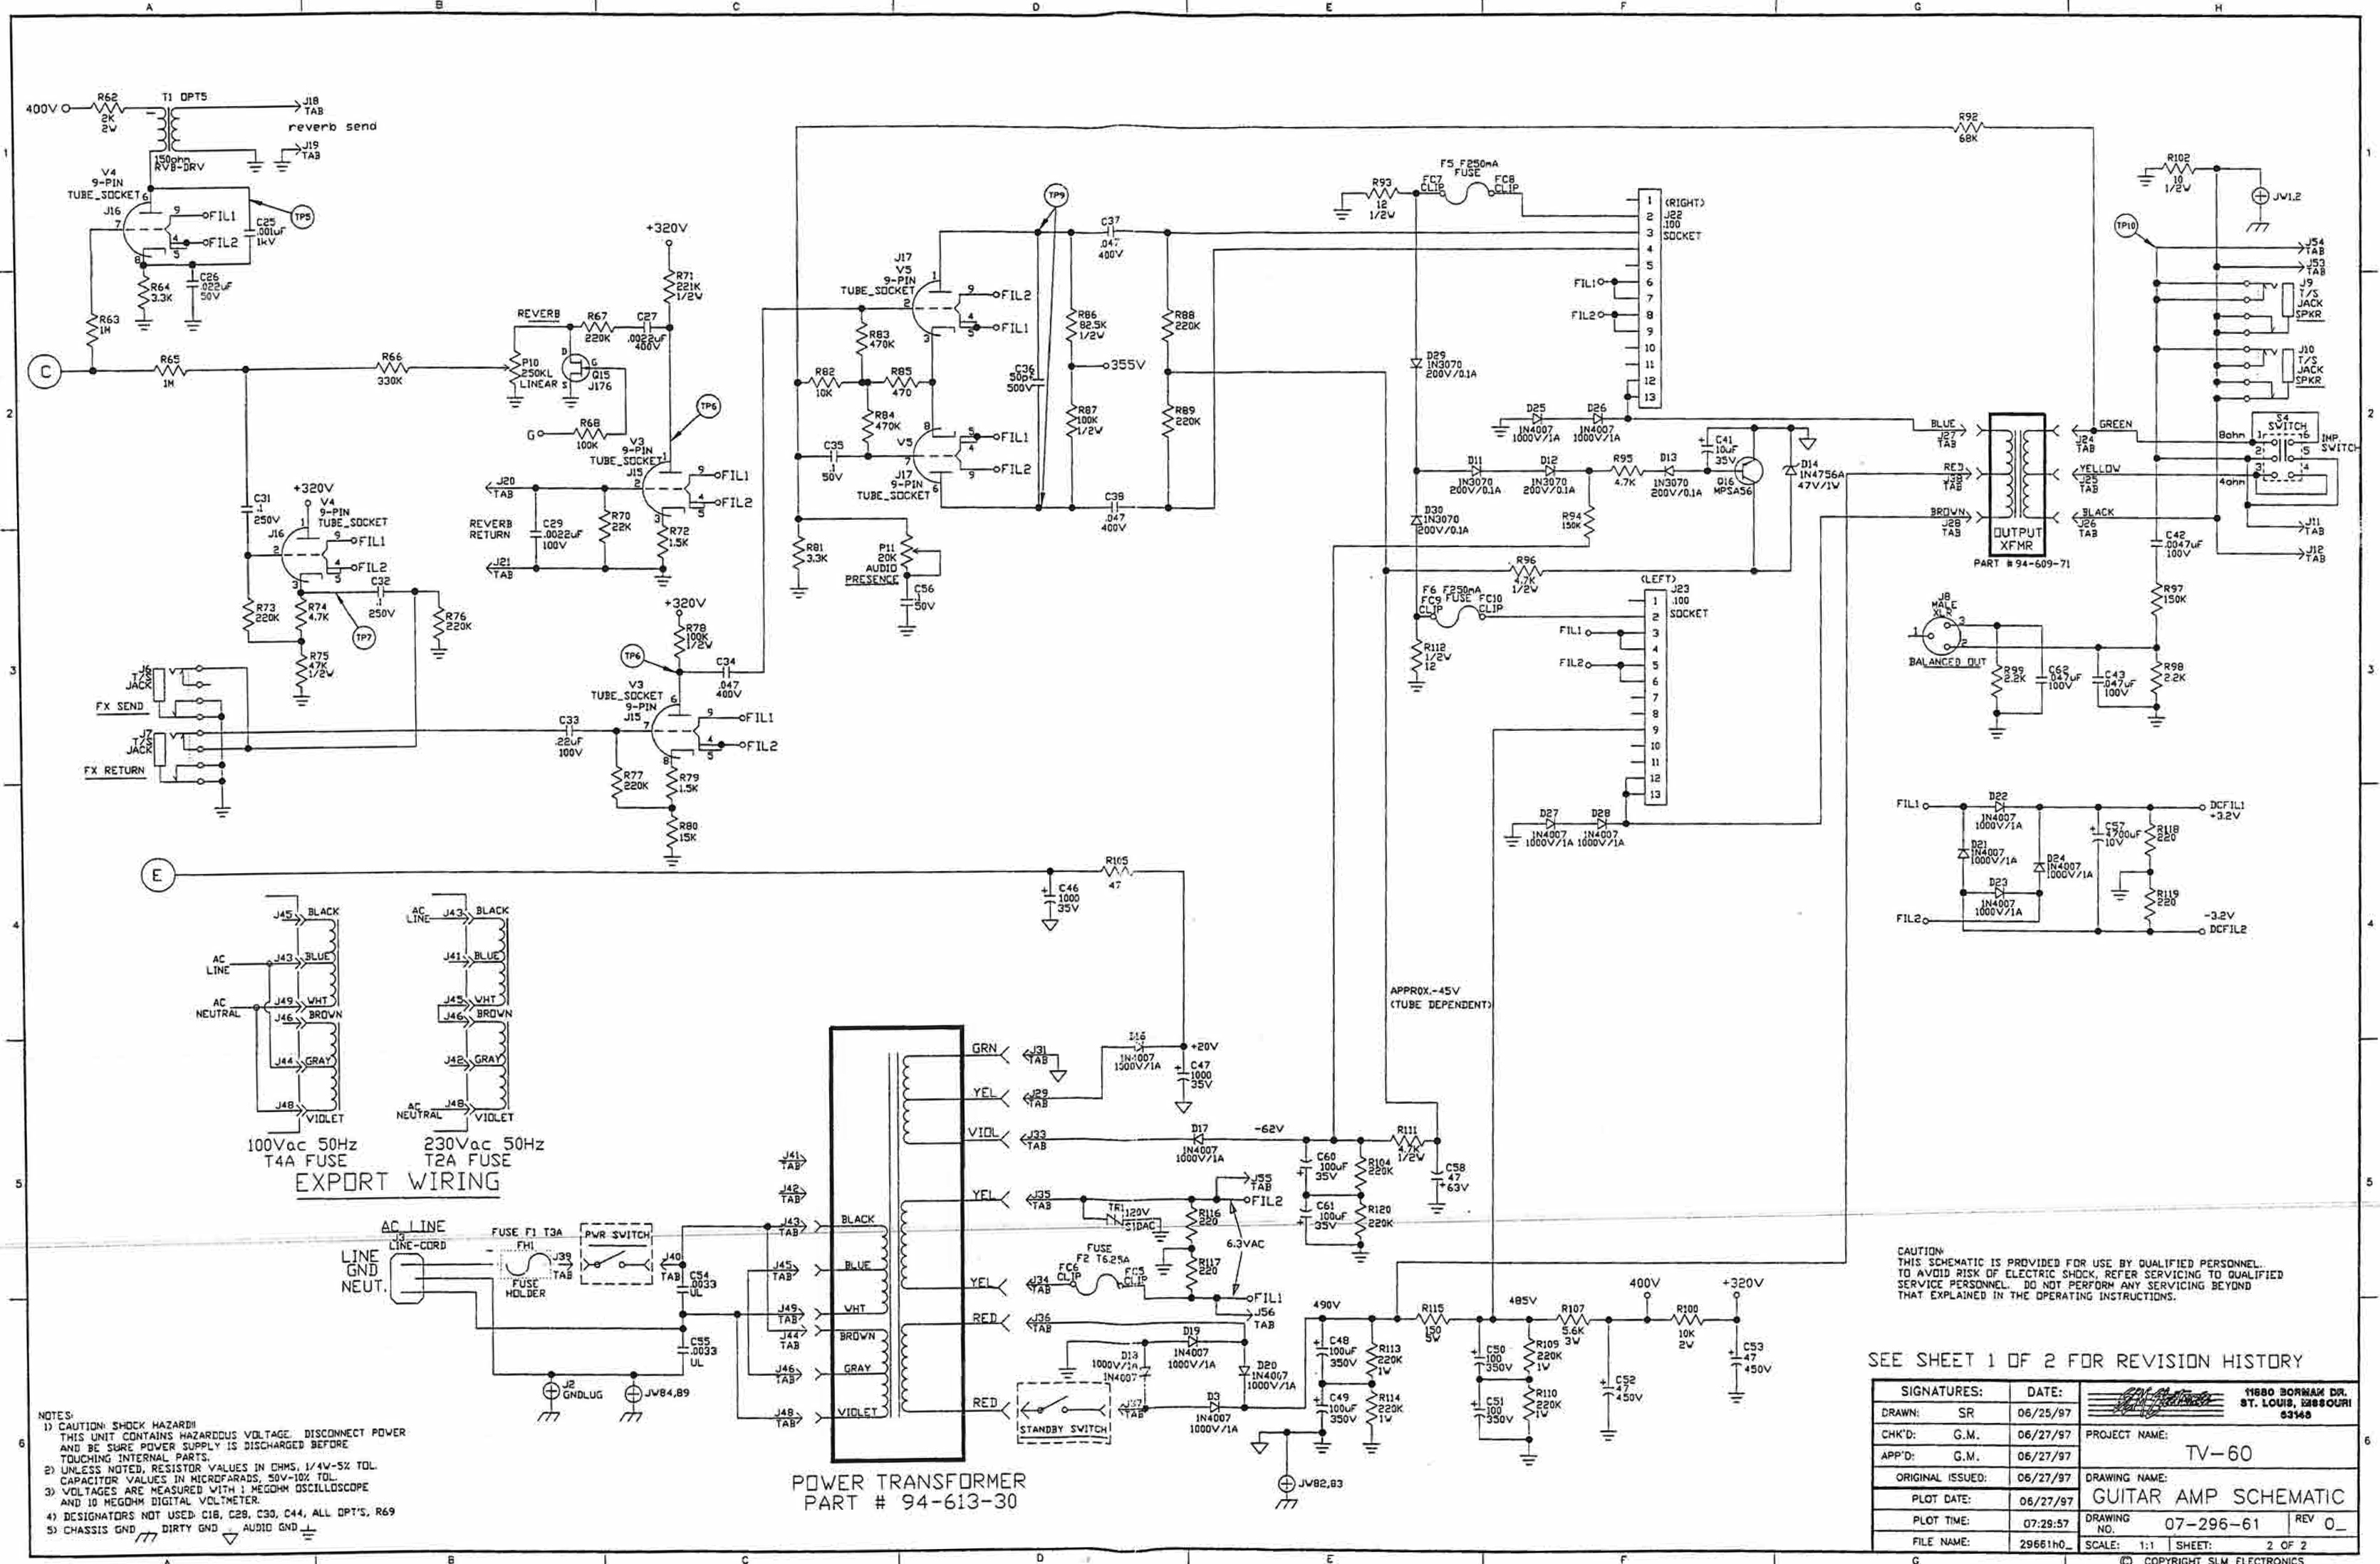 Crate Guitar Amp Wiring Diagram 1999 Jeep Grand Cherokee Laredo Stereo Wiring Diagram Electrical Wiring Gotoscool Jeanjaures37 Fr